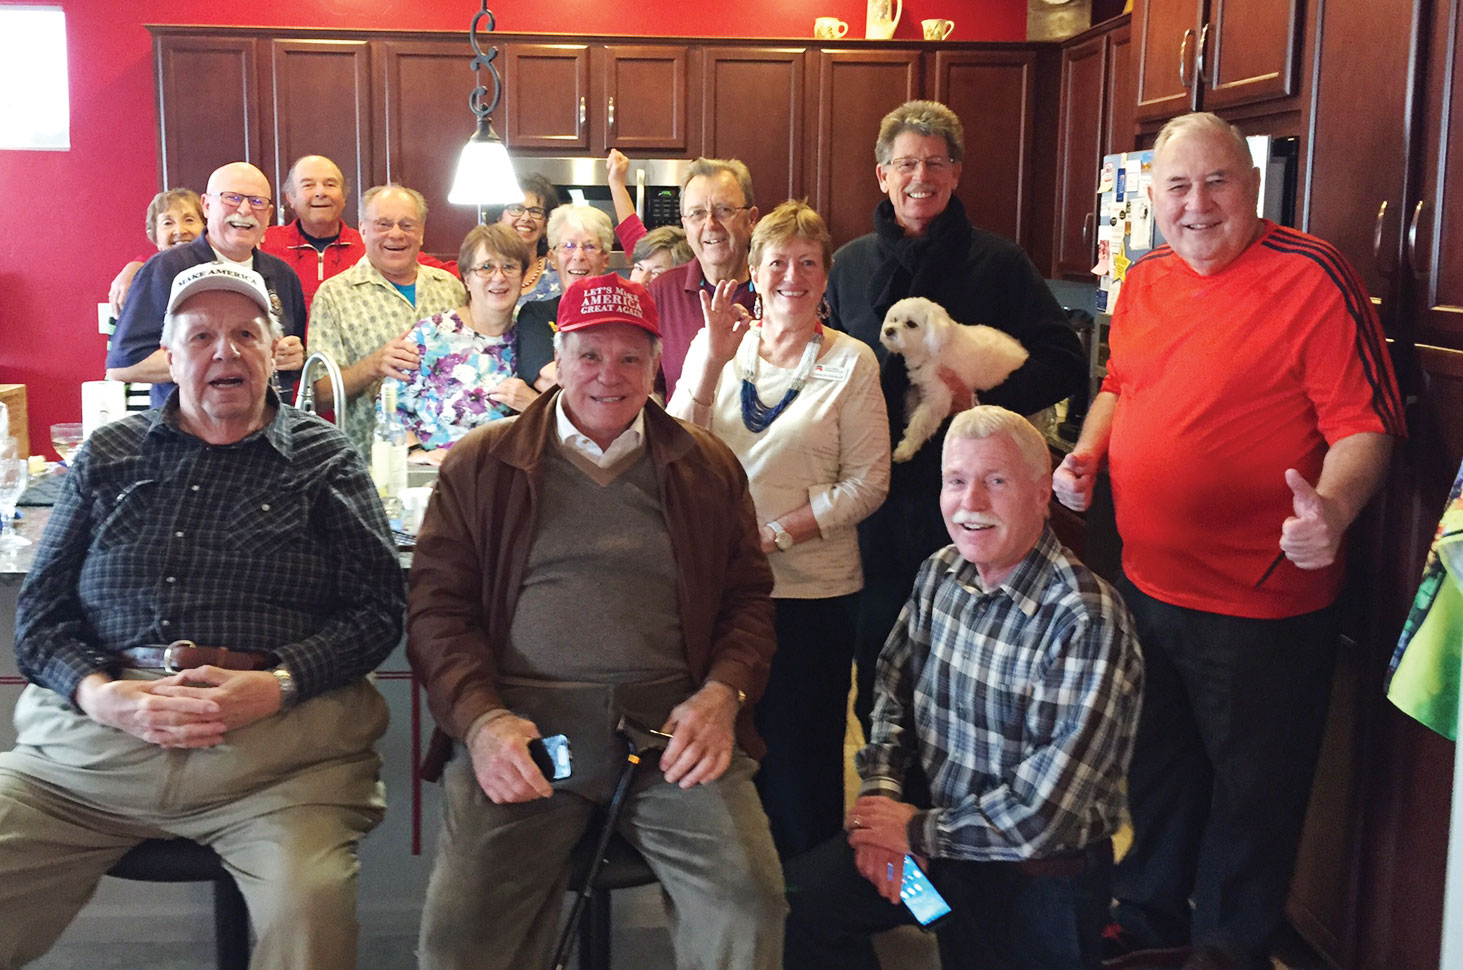 Inauguration party with most of the invited Quail Creek homeowners including a guest appearance by Mr. Ed Robson at 538 Easter Lily Lane. He made our day!